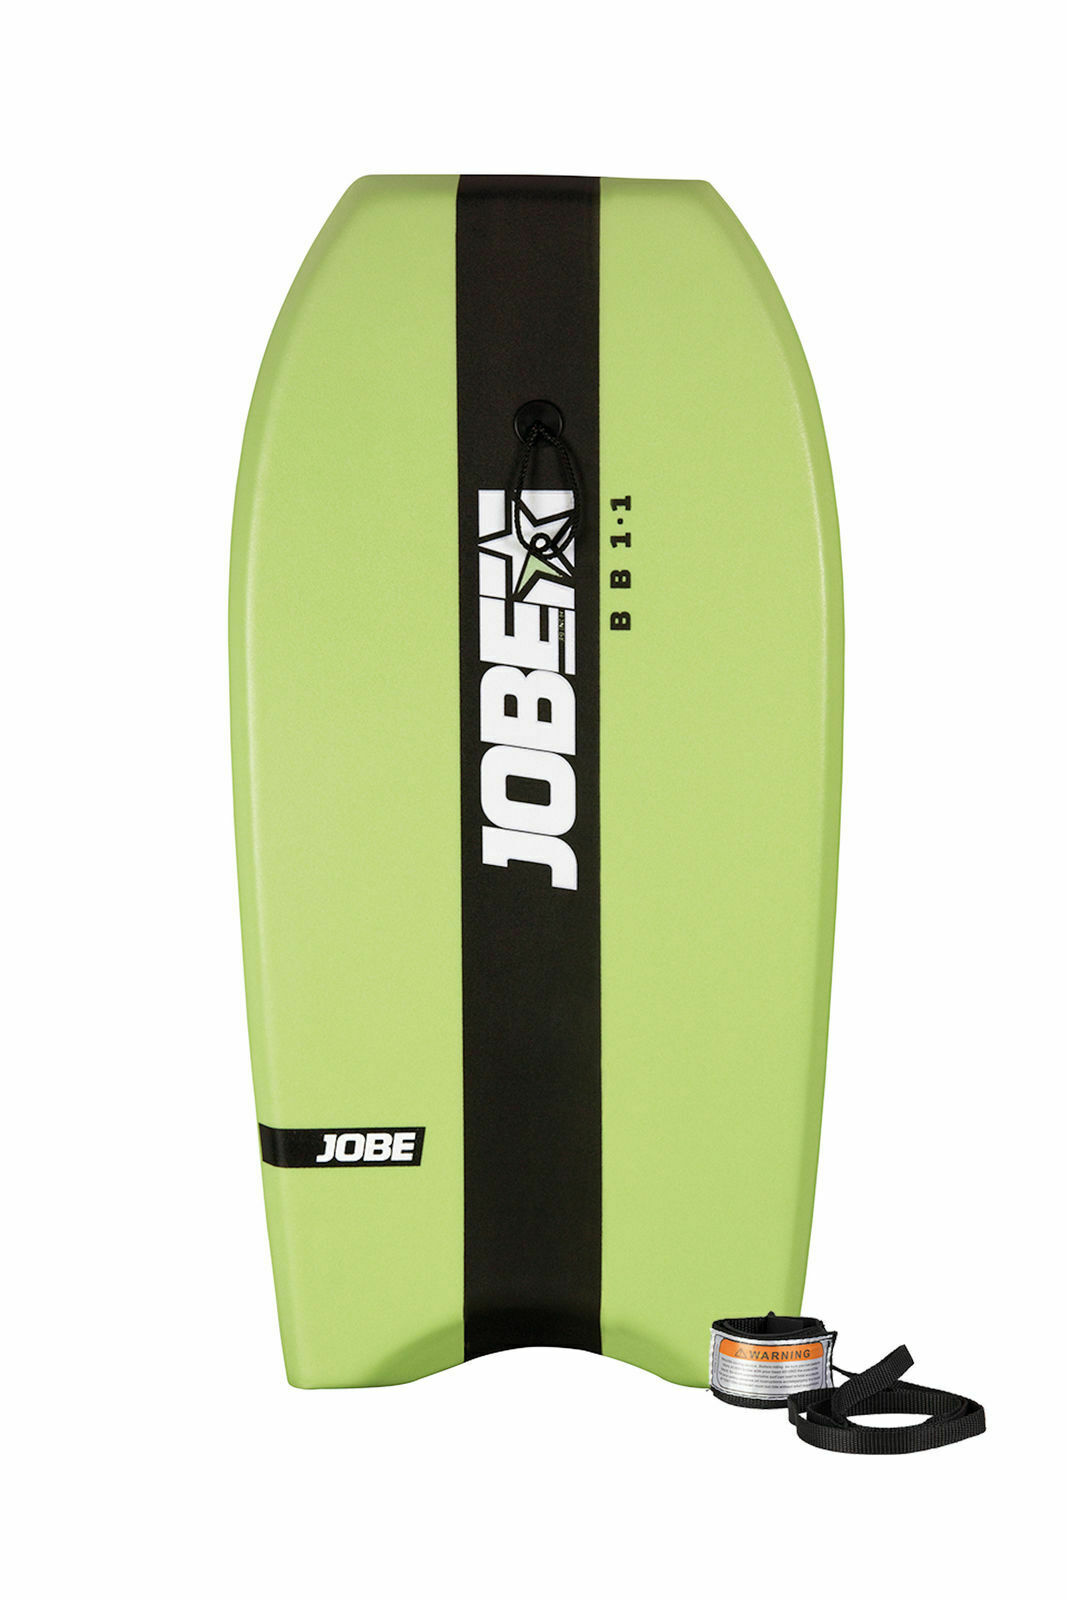 Jobe BODYBOARD BB1.1 Two sizes available  great for the sea, lake or pool